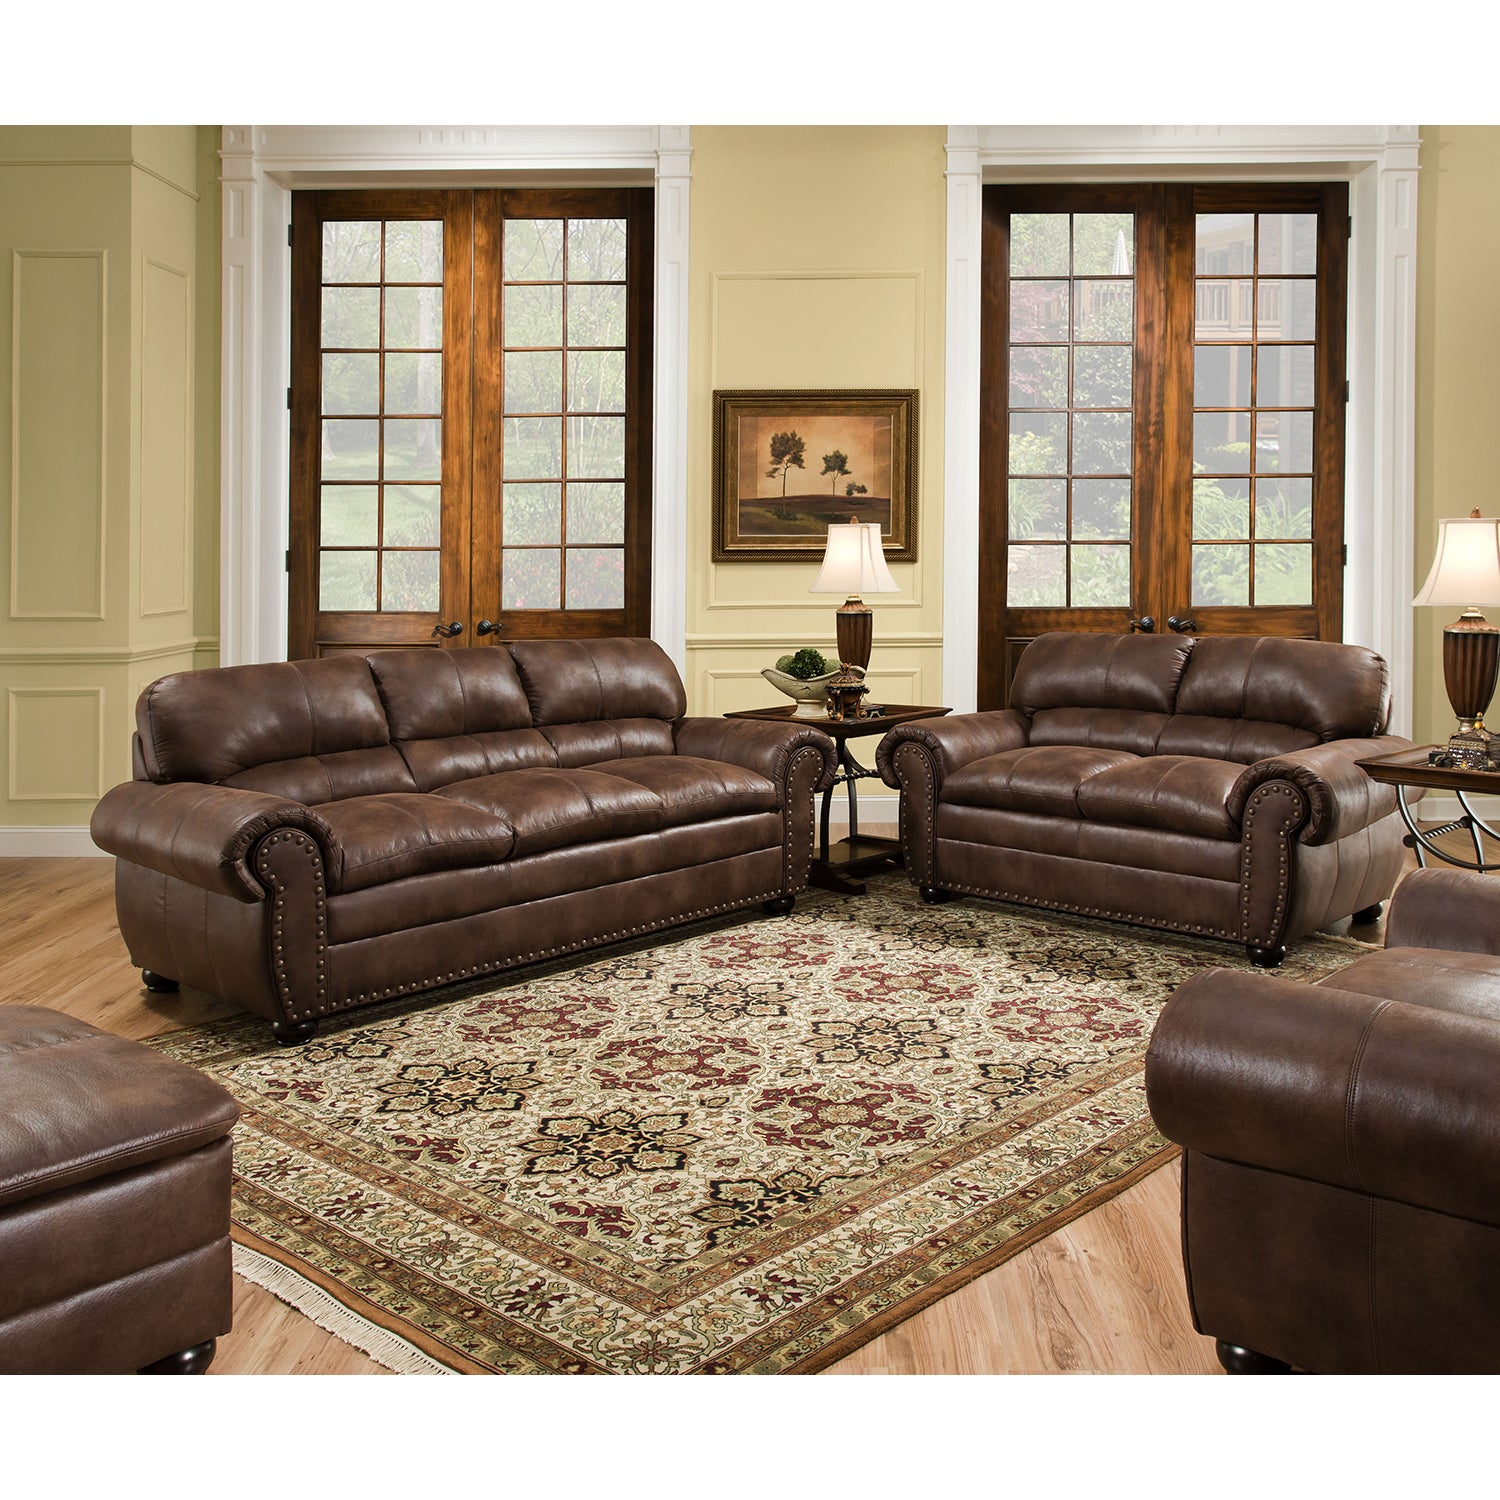 Simmons Upholstery Padre Espresso Loveseat (Brown) (Fabric)